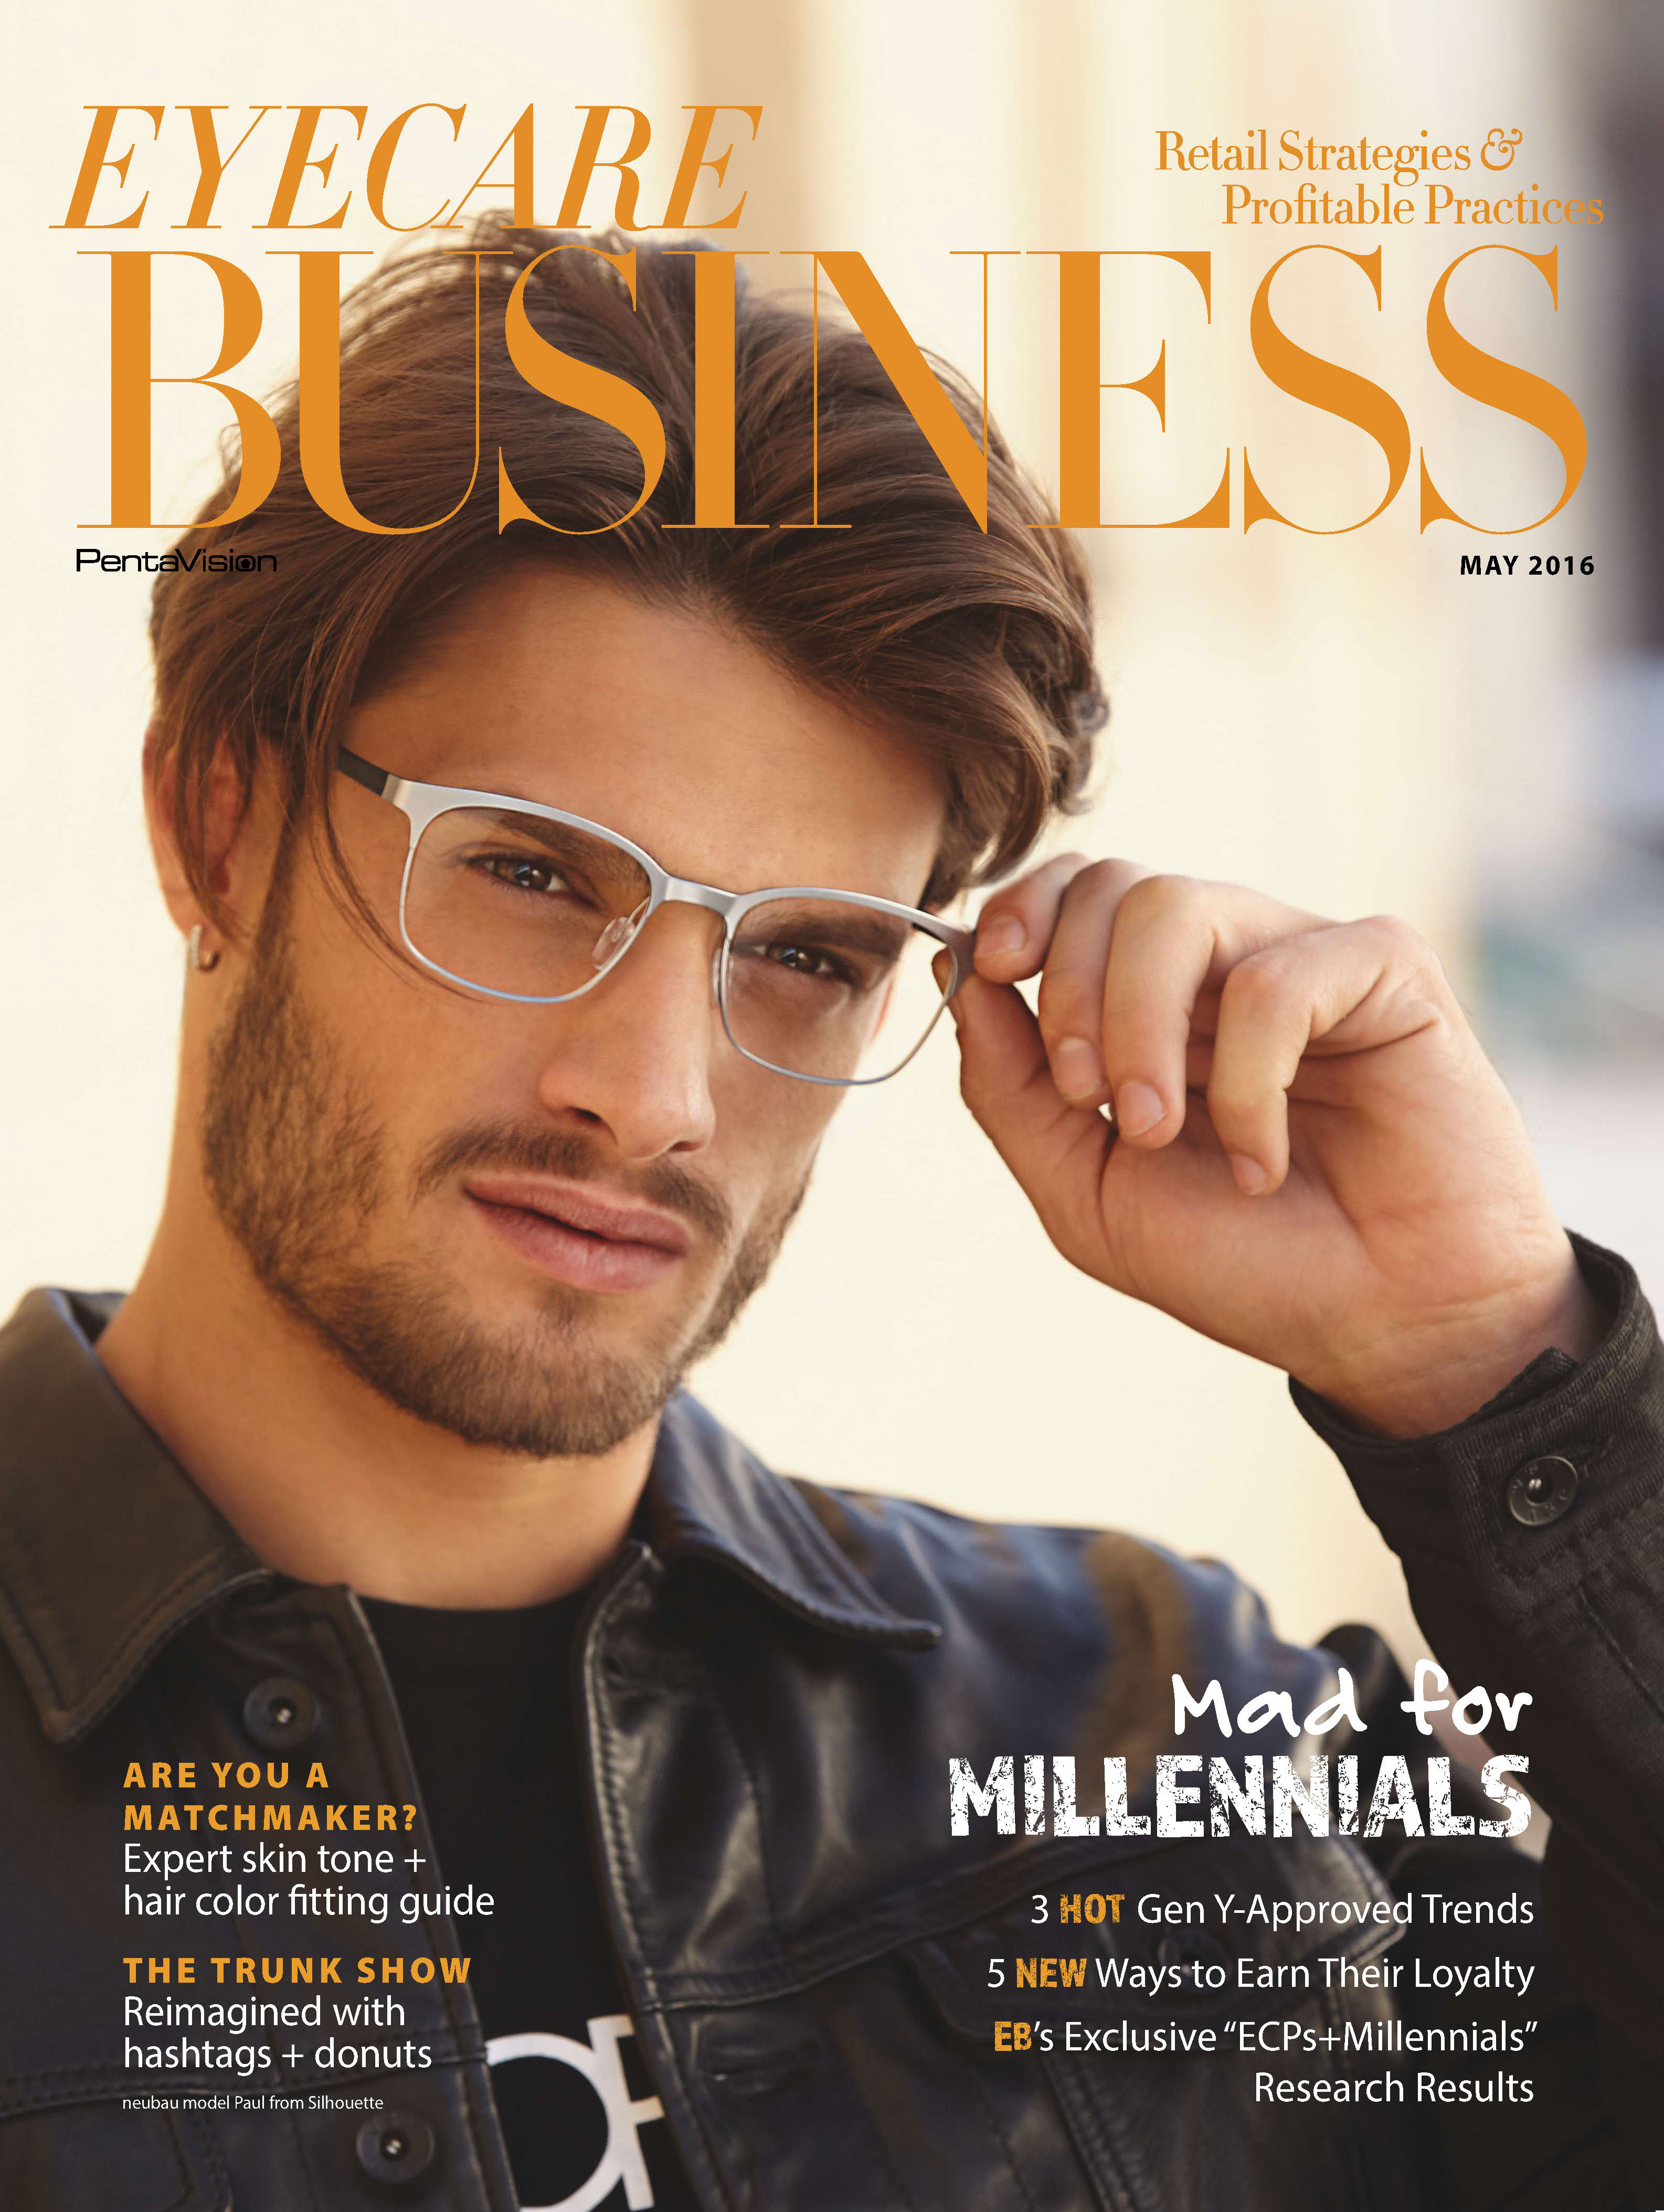 Eyecare Business_MAY 2016